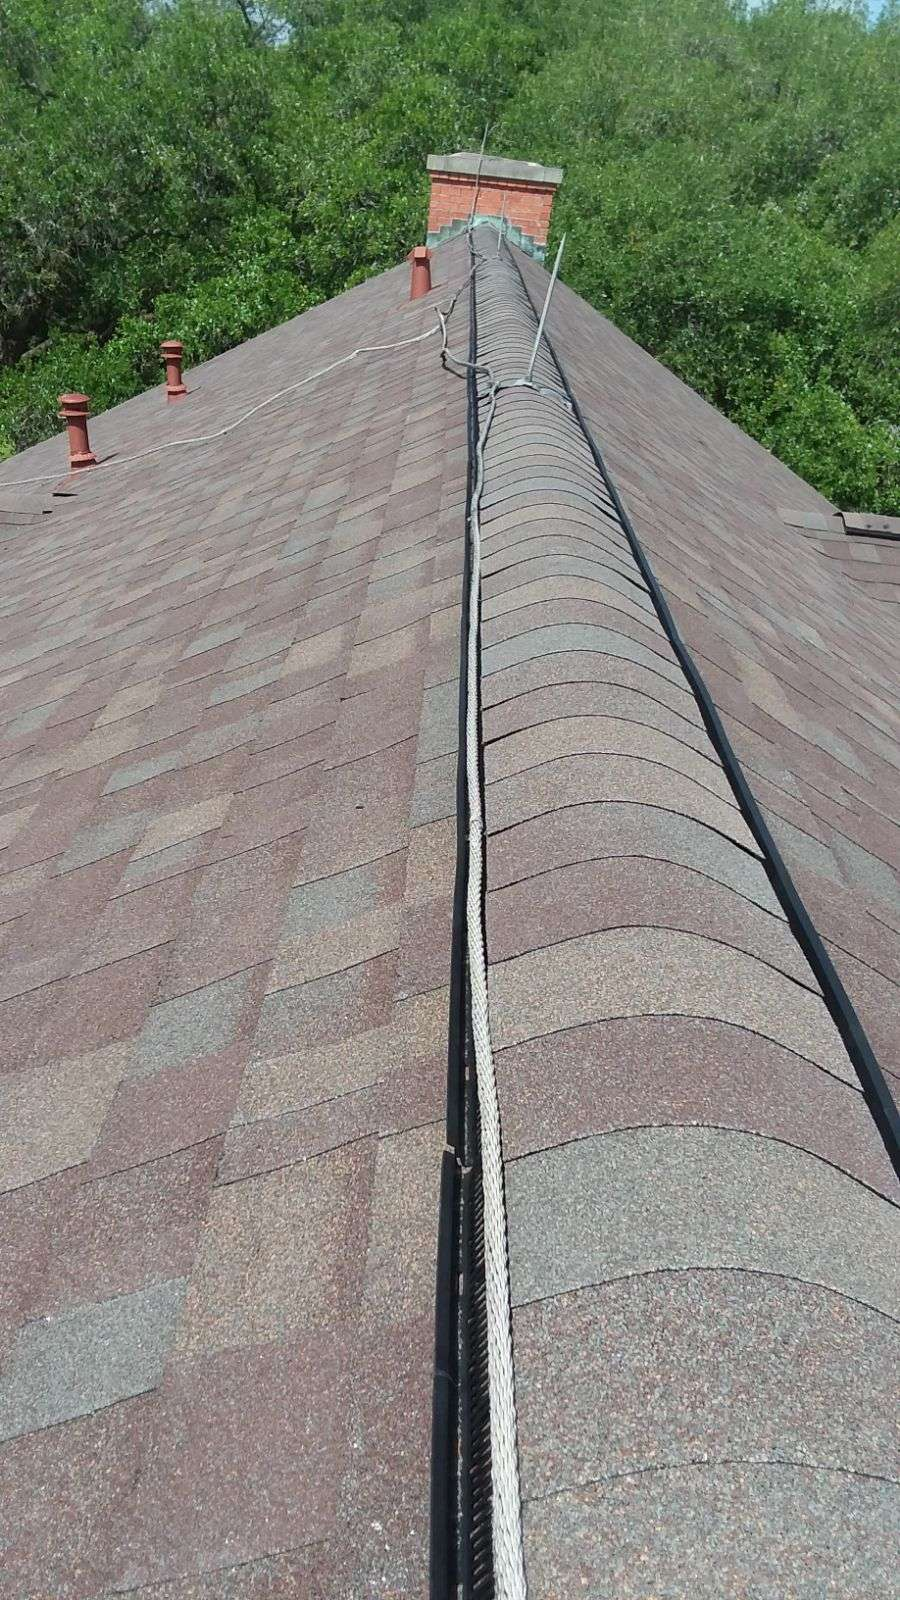 Seamless Gutters and Roof Service - roofing contractor  | Photo 8 of 10 | Address: 593 Legion Rd, Angleton, TX 77515, USA | Phone: (979) 418-1335